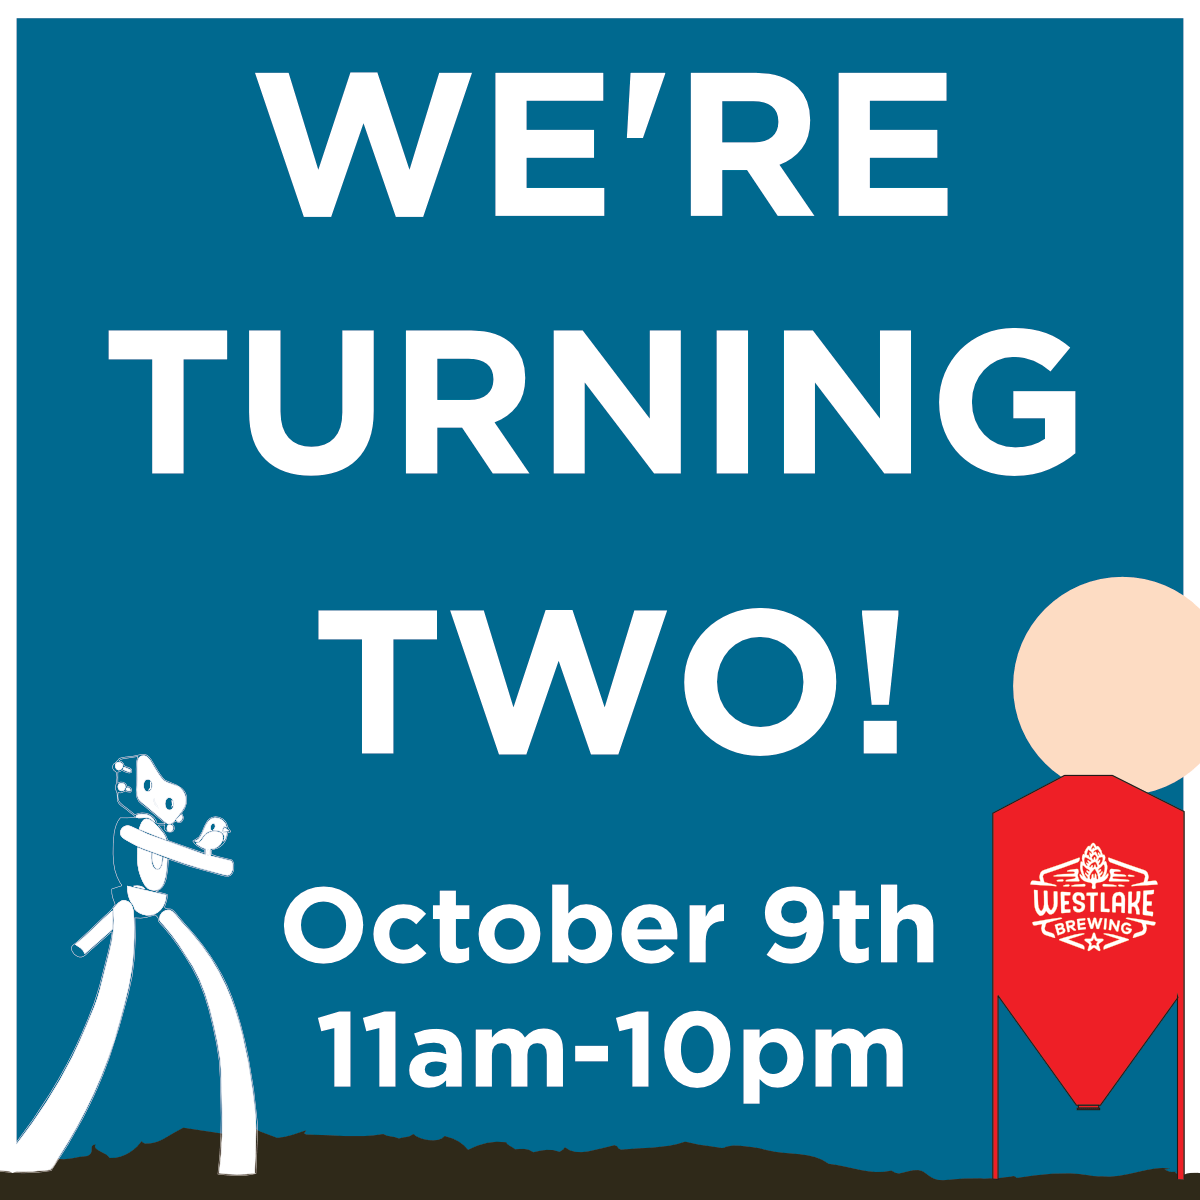 We're Turning Two!